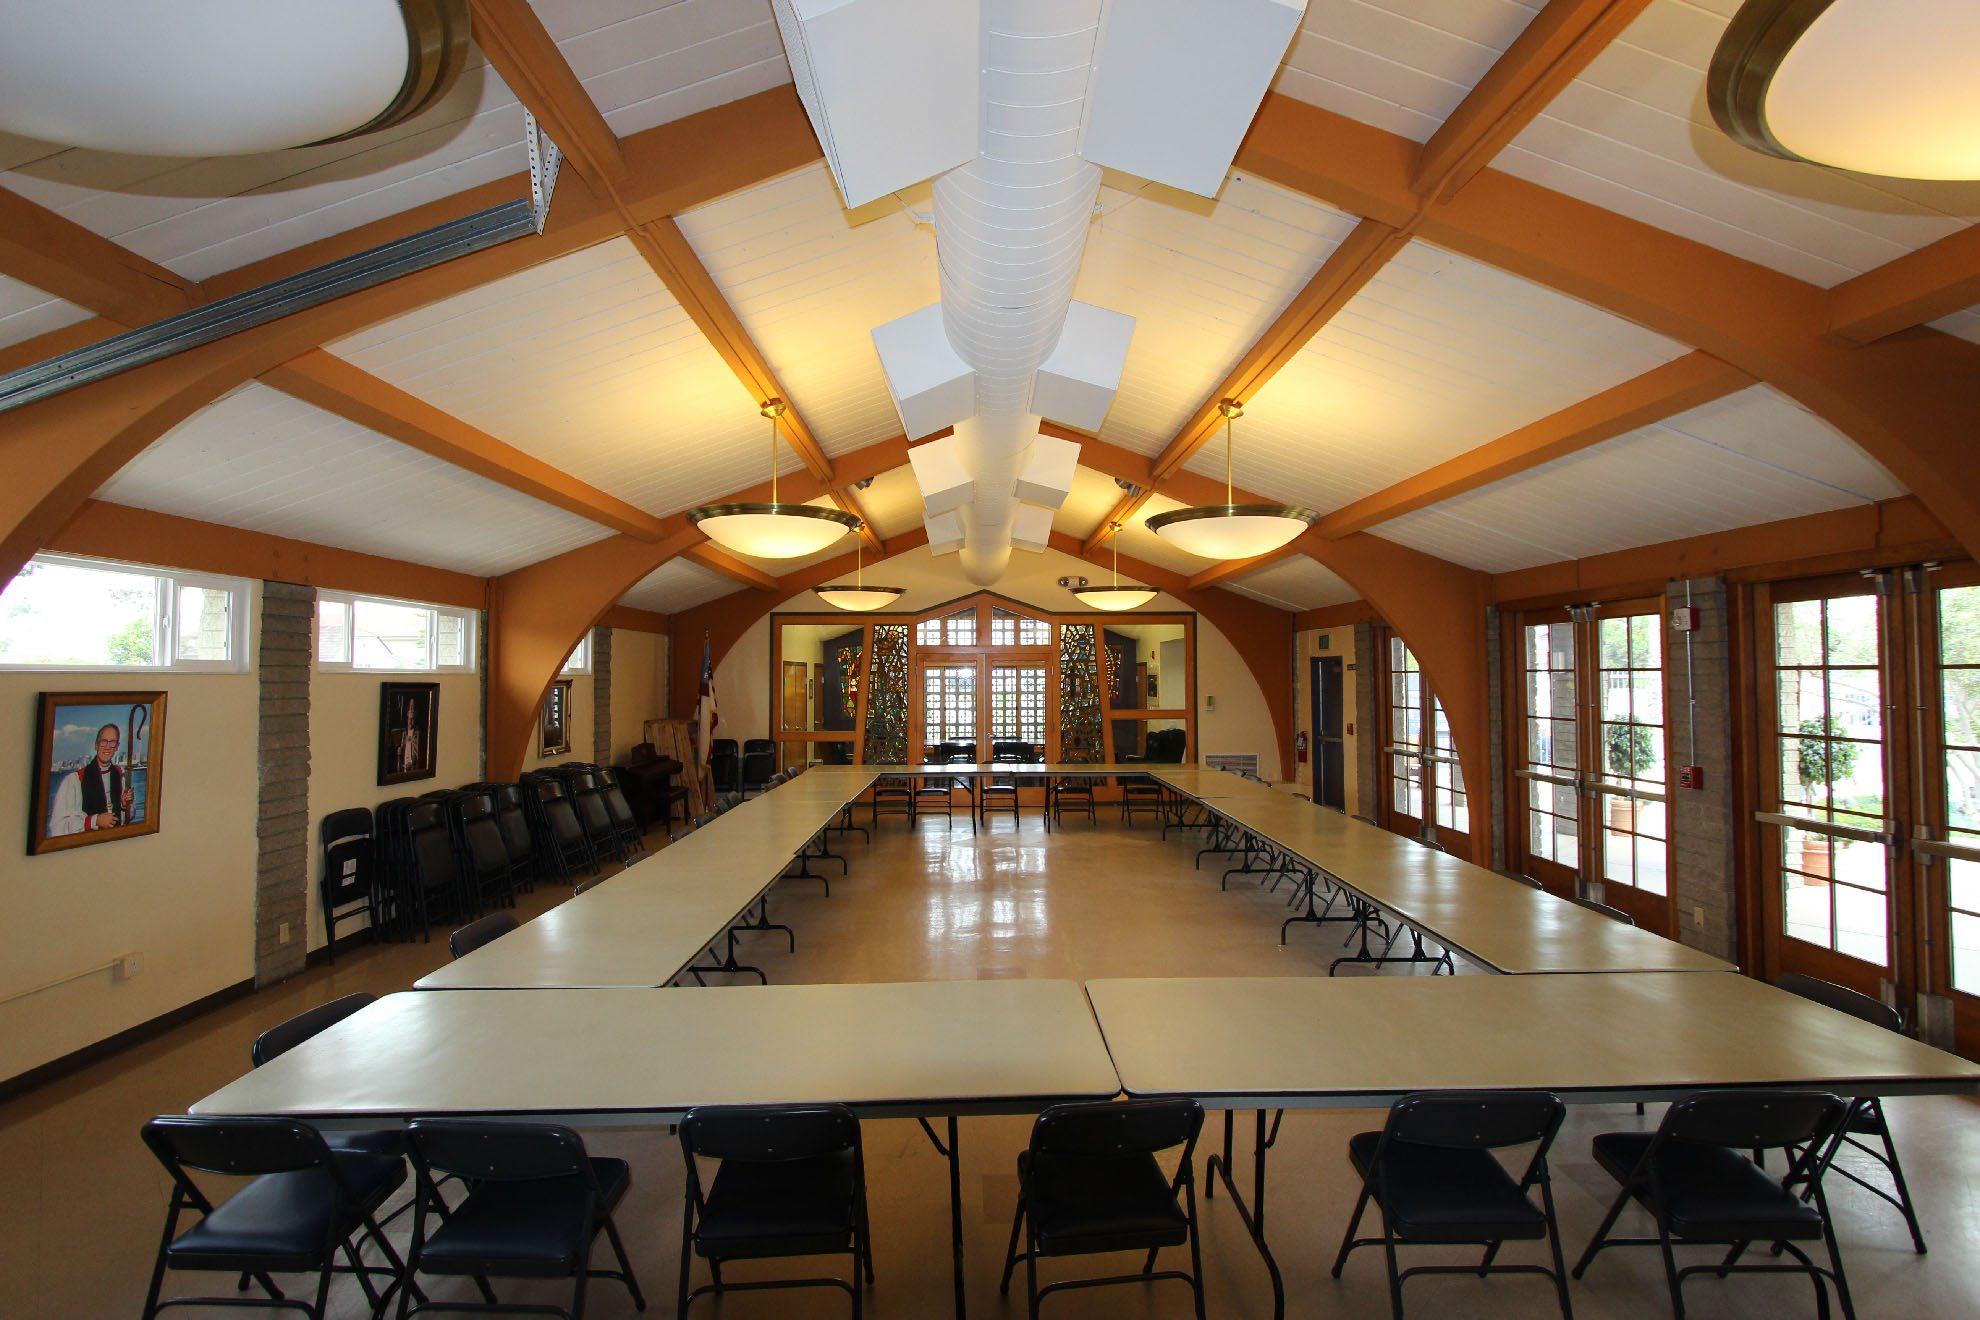 Episcopal Church Center Renovation